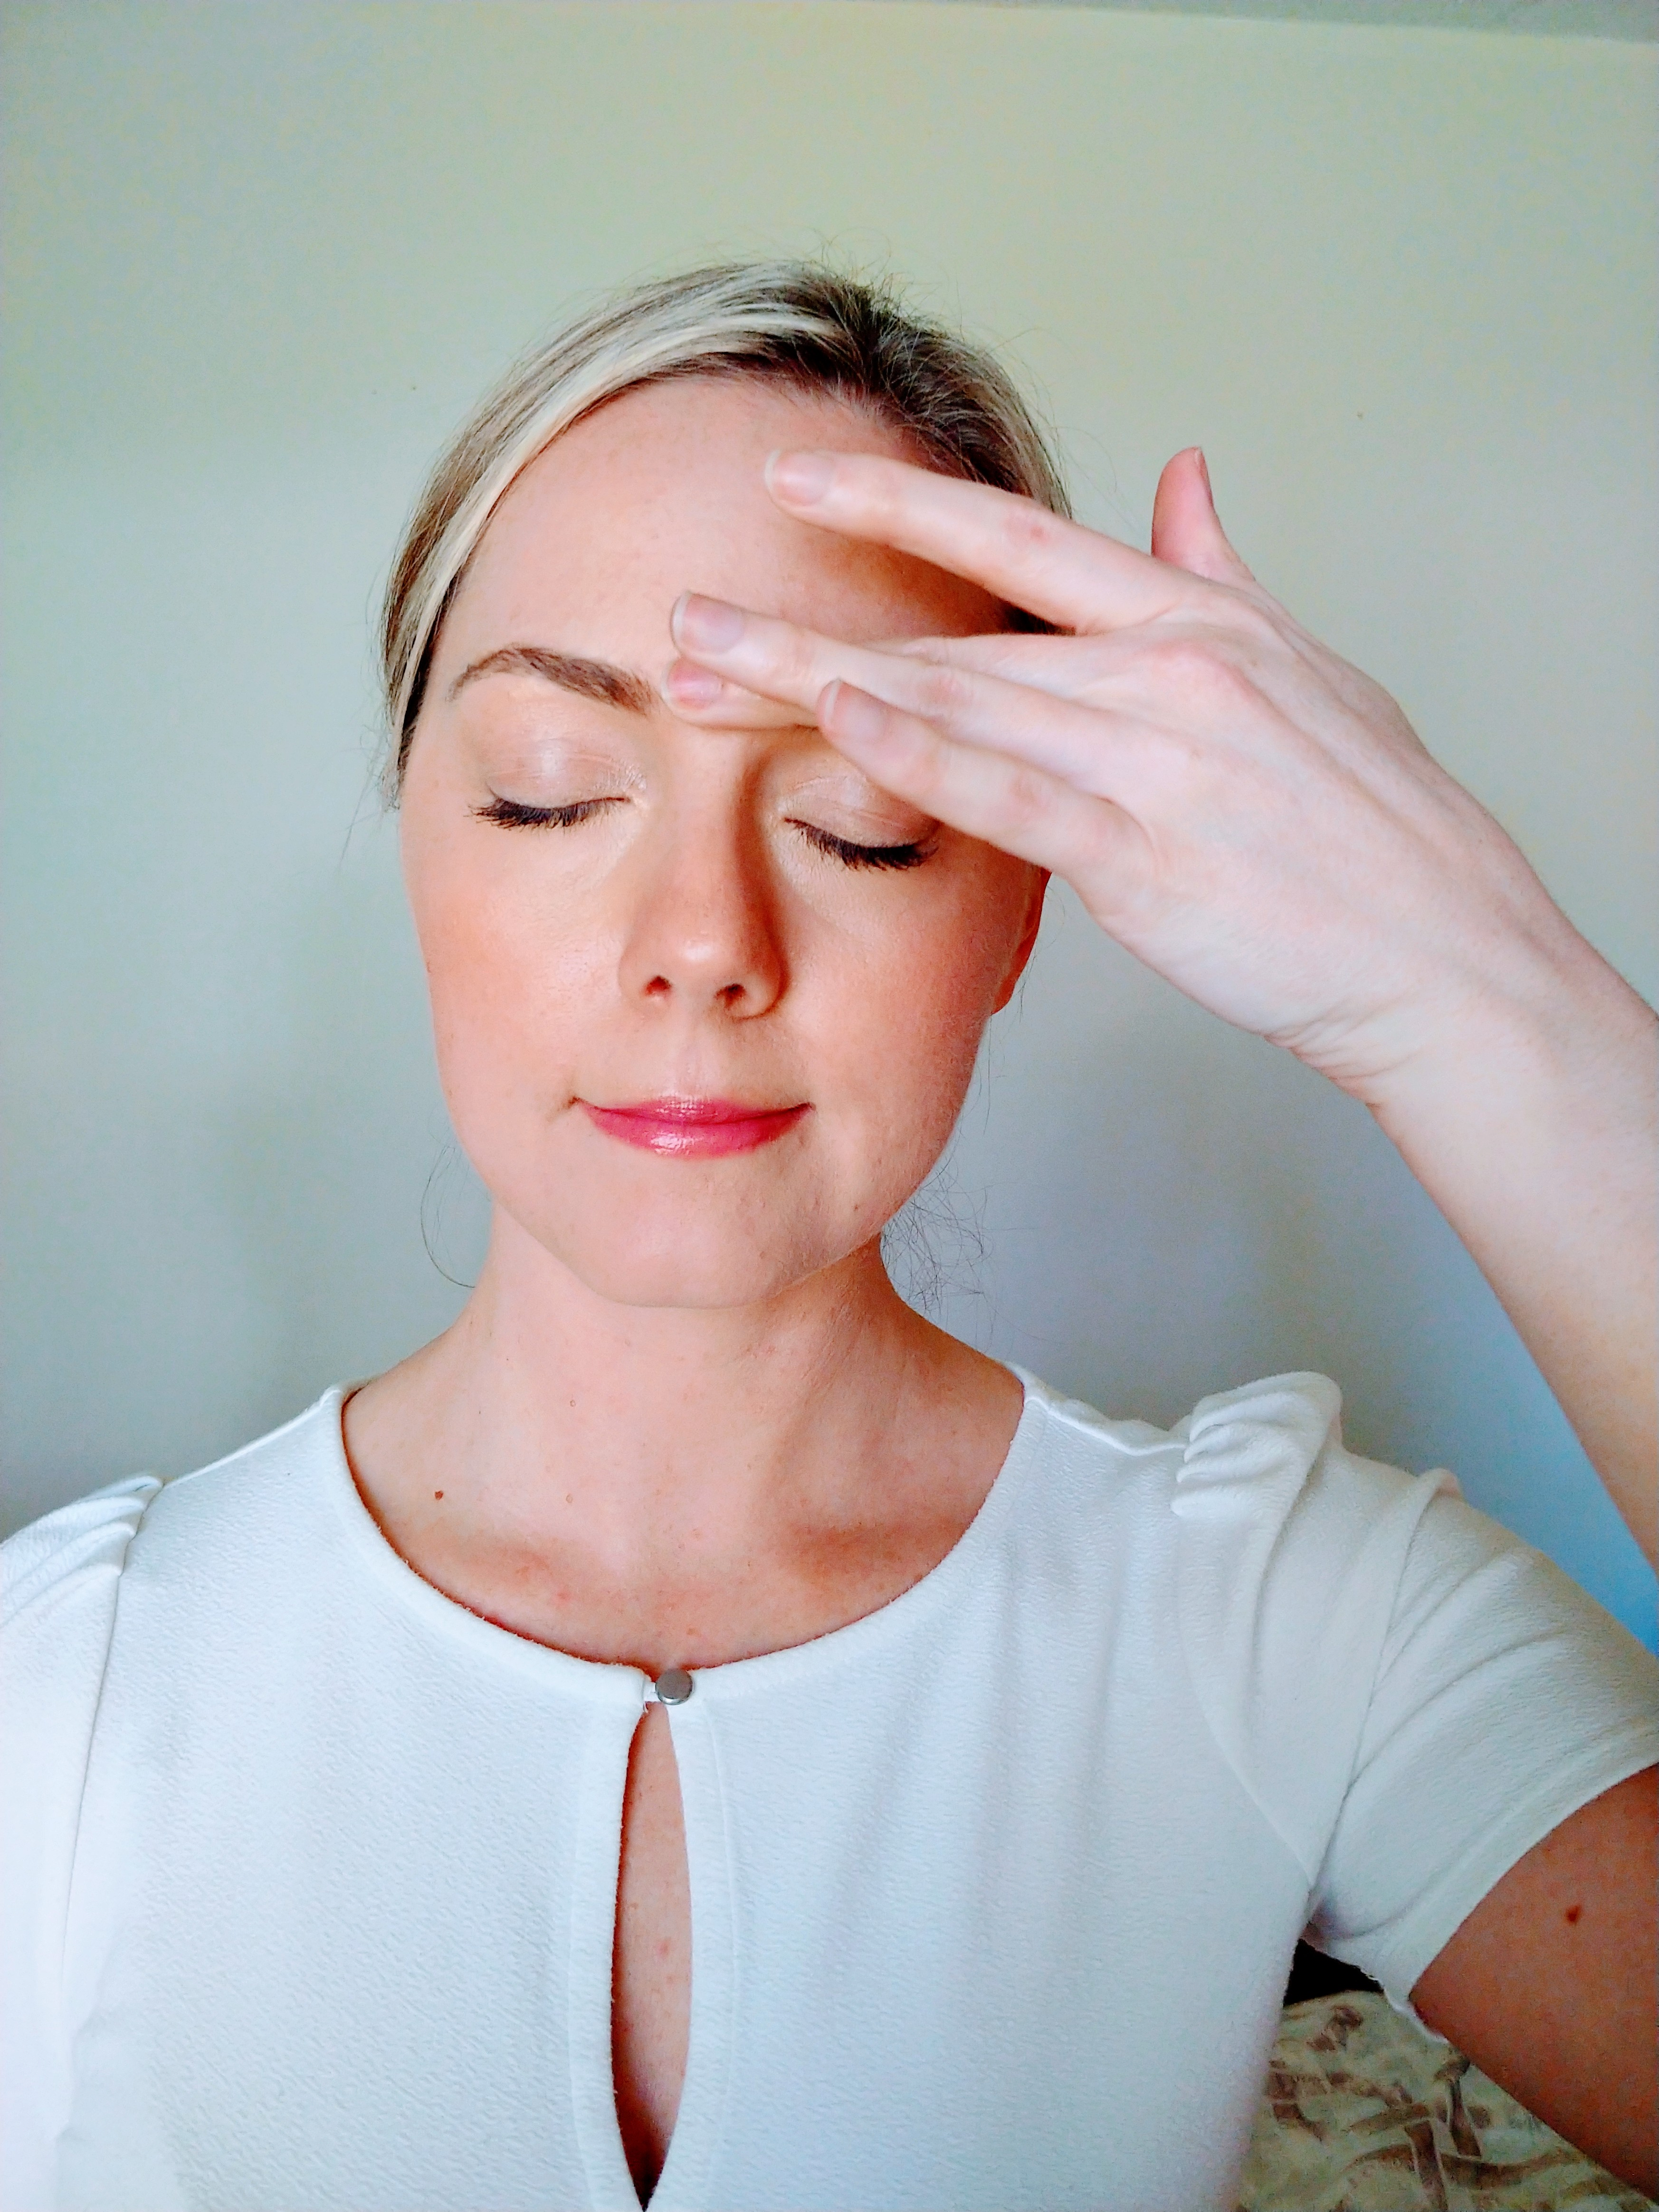 Top Five Acupressure Points For Relaxation